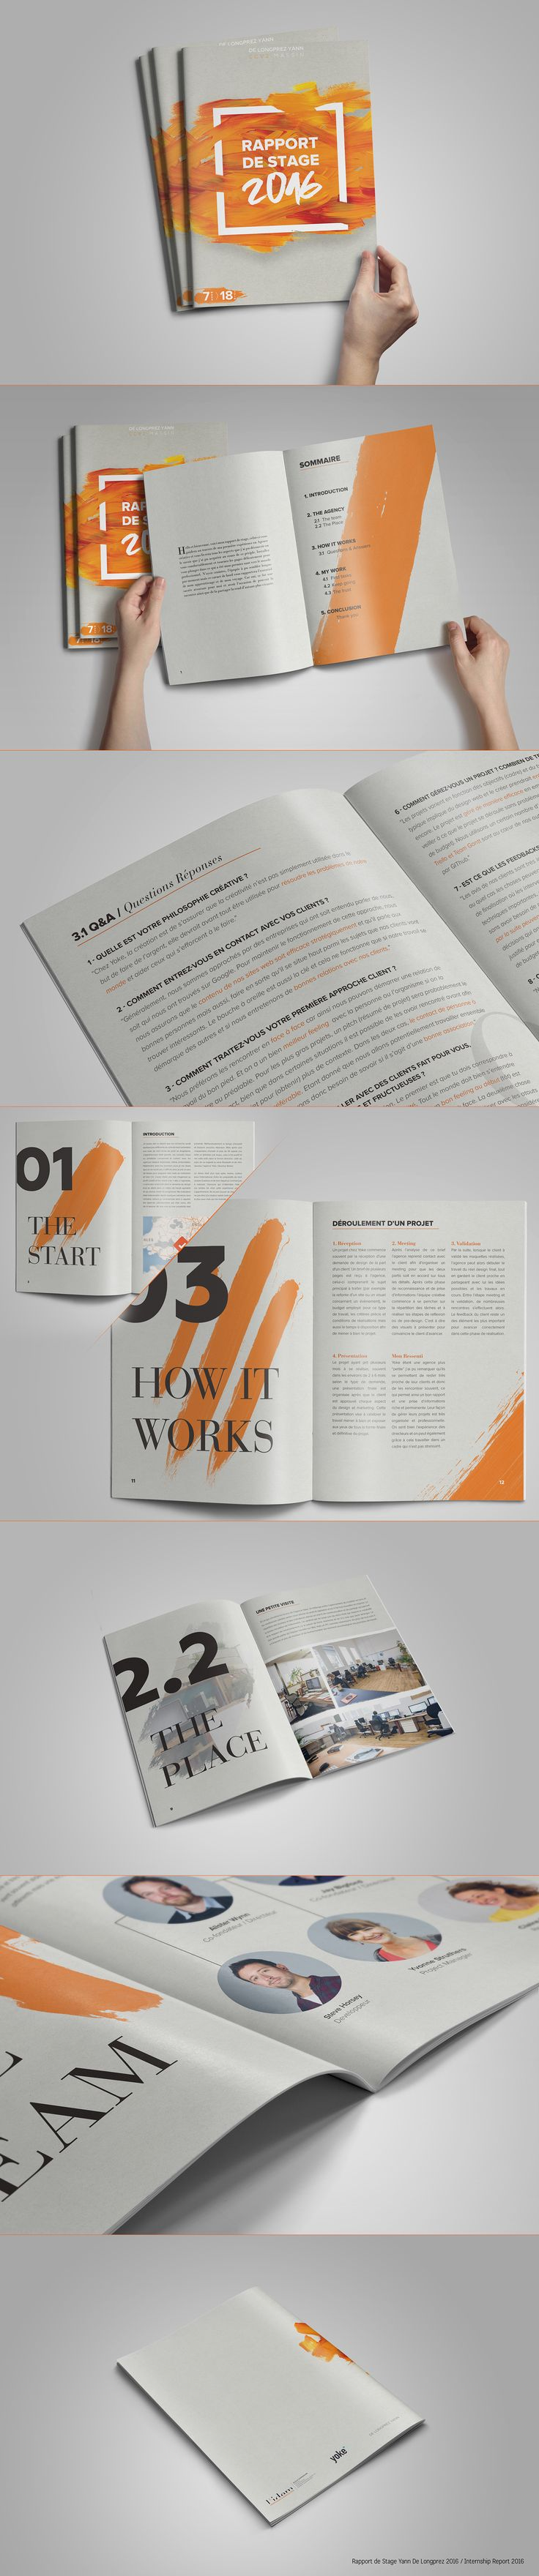 "Check out this @Behance project: ""Internship Report 2016 / Rapport de Stage 2016"" https://www.behance.net/gallery/44550071/Internship-Report-2016-Rapport-de-Stage-2016"